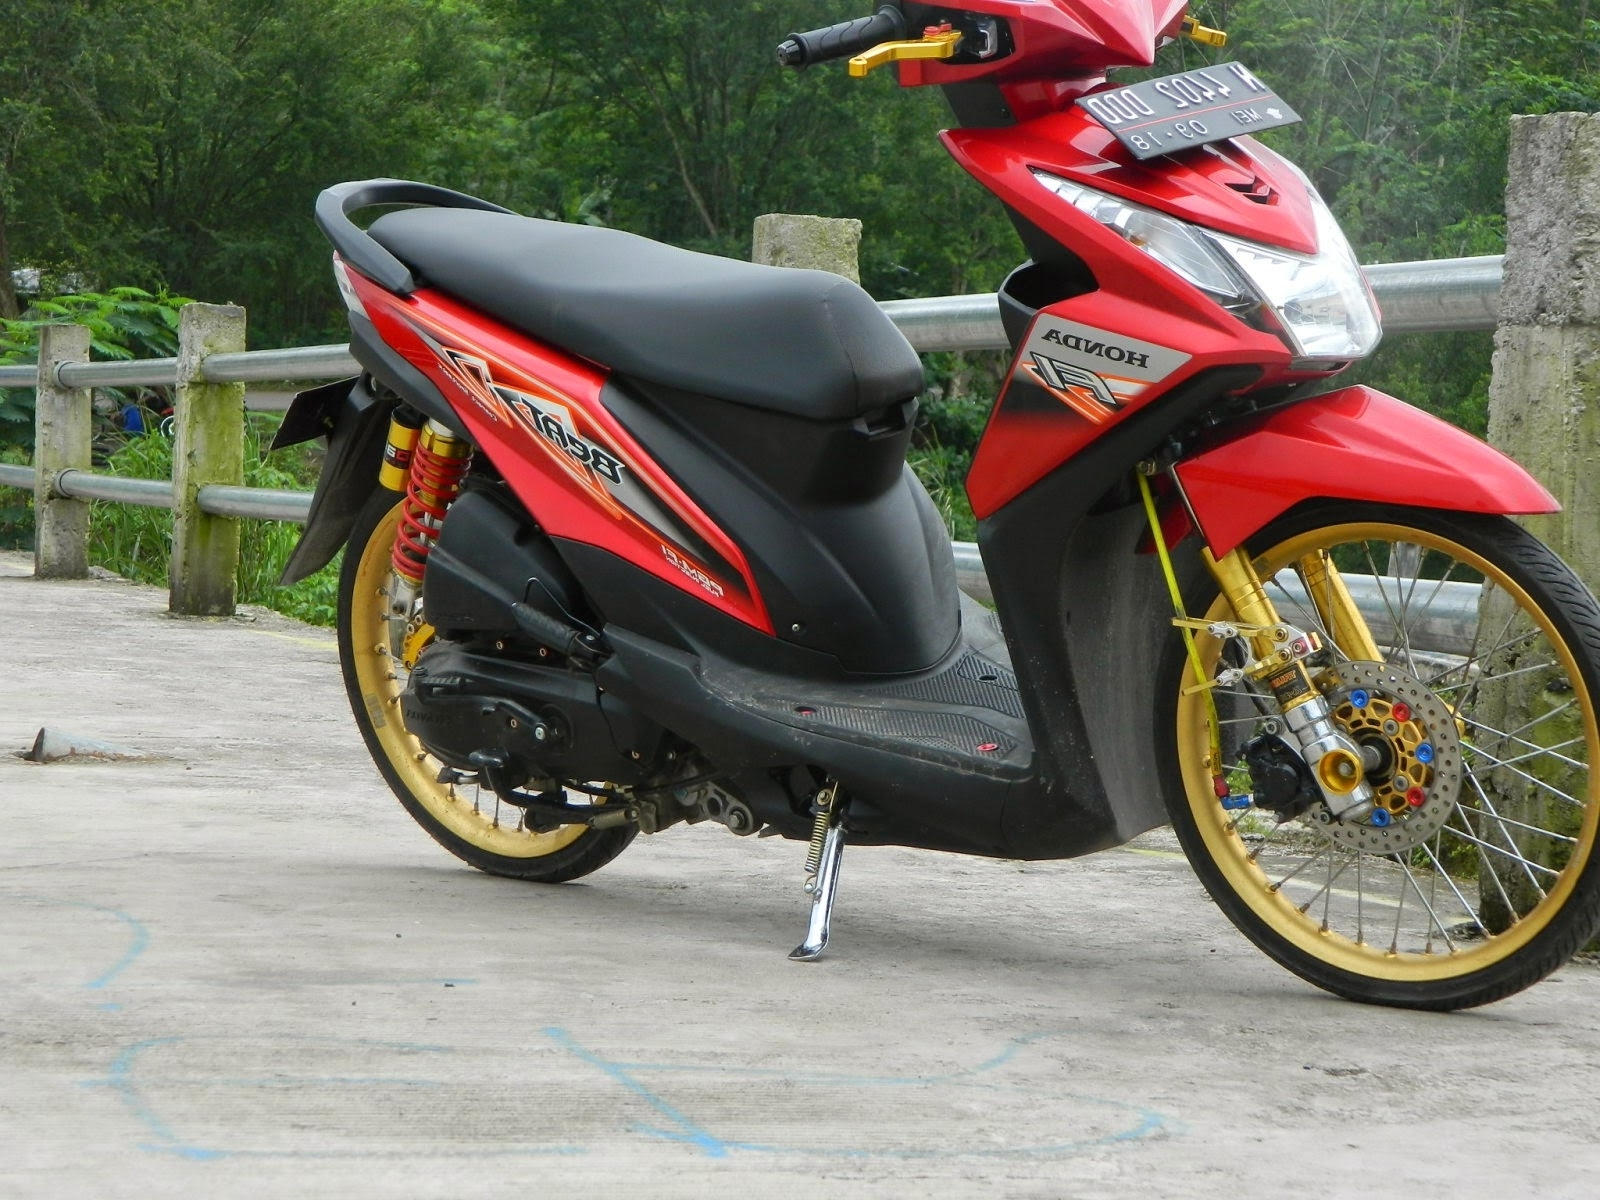 Gambar Modifikasi Motor Vario 110 Terbaru Earth Modification